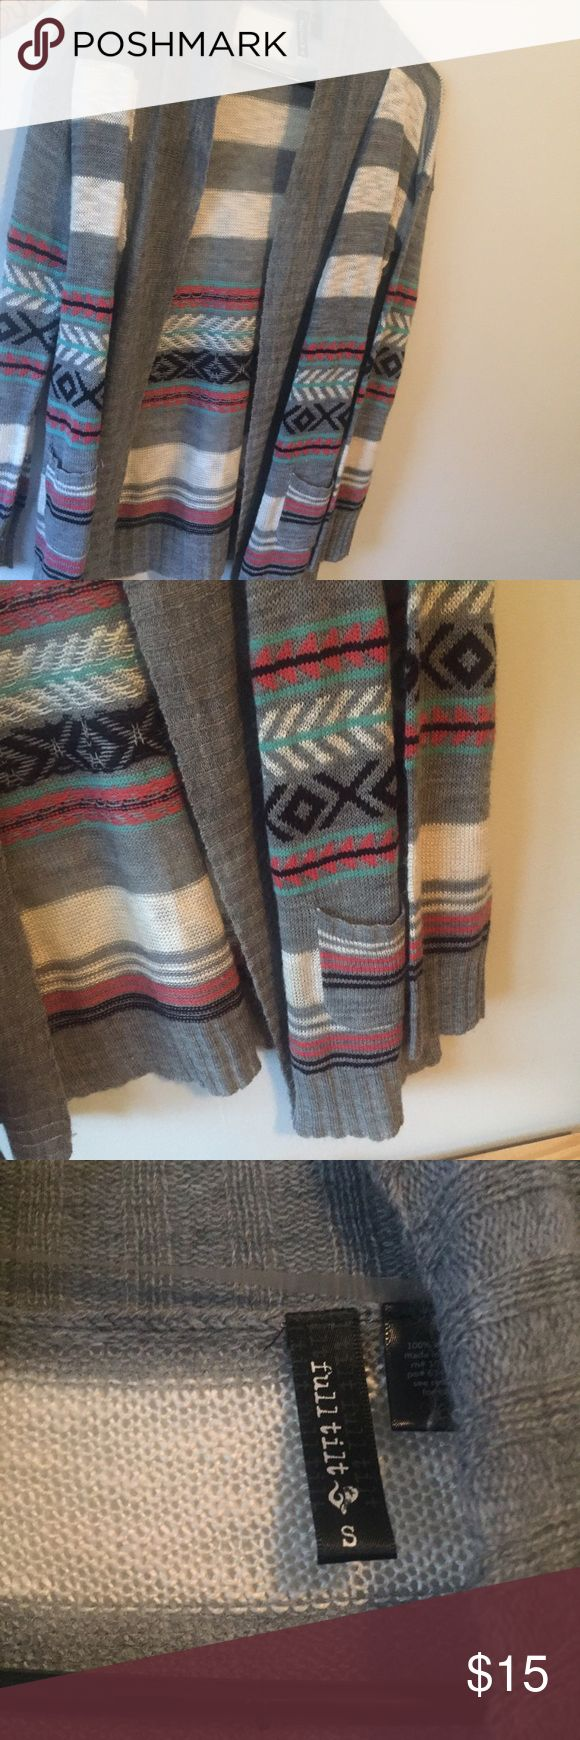 Tribal Sweater Small/ Full Tilt/ Grey, pink, white blue and black open sweater. Only worn once. Full Tilt Sweaters Cardigans